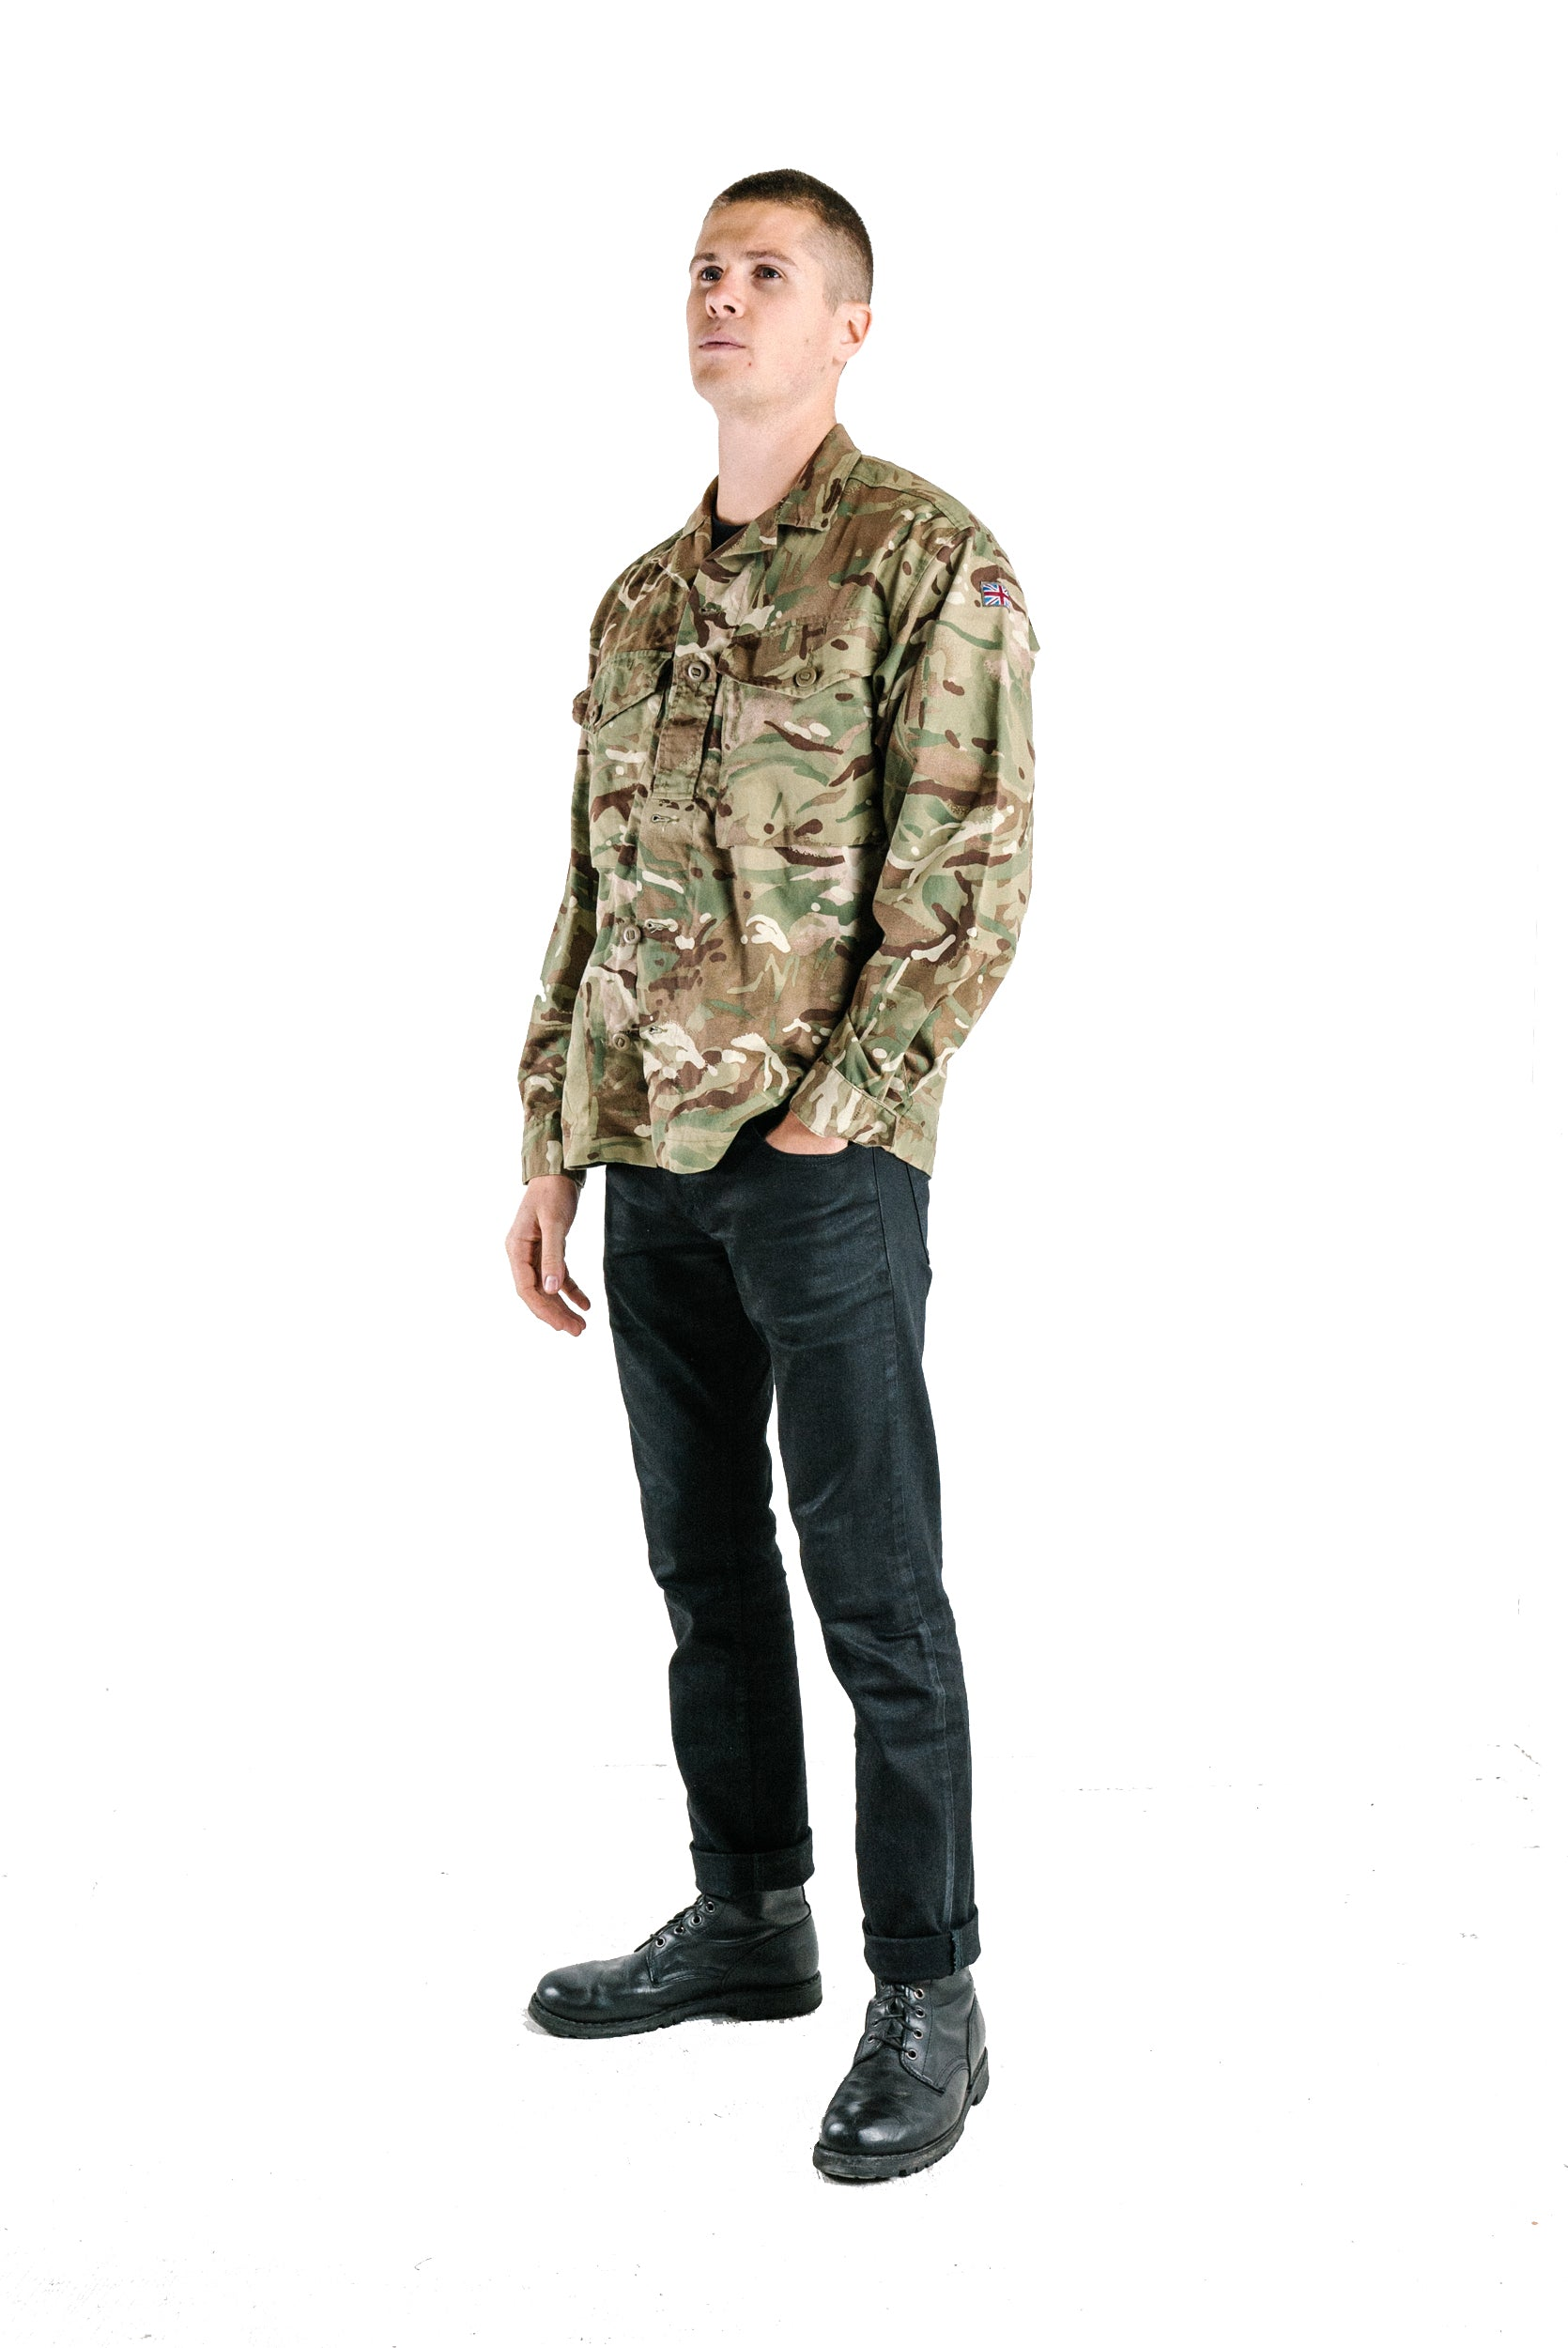 British MTP Shirt - current British armed forces issue